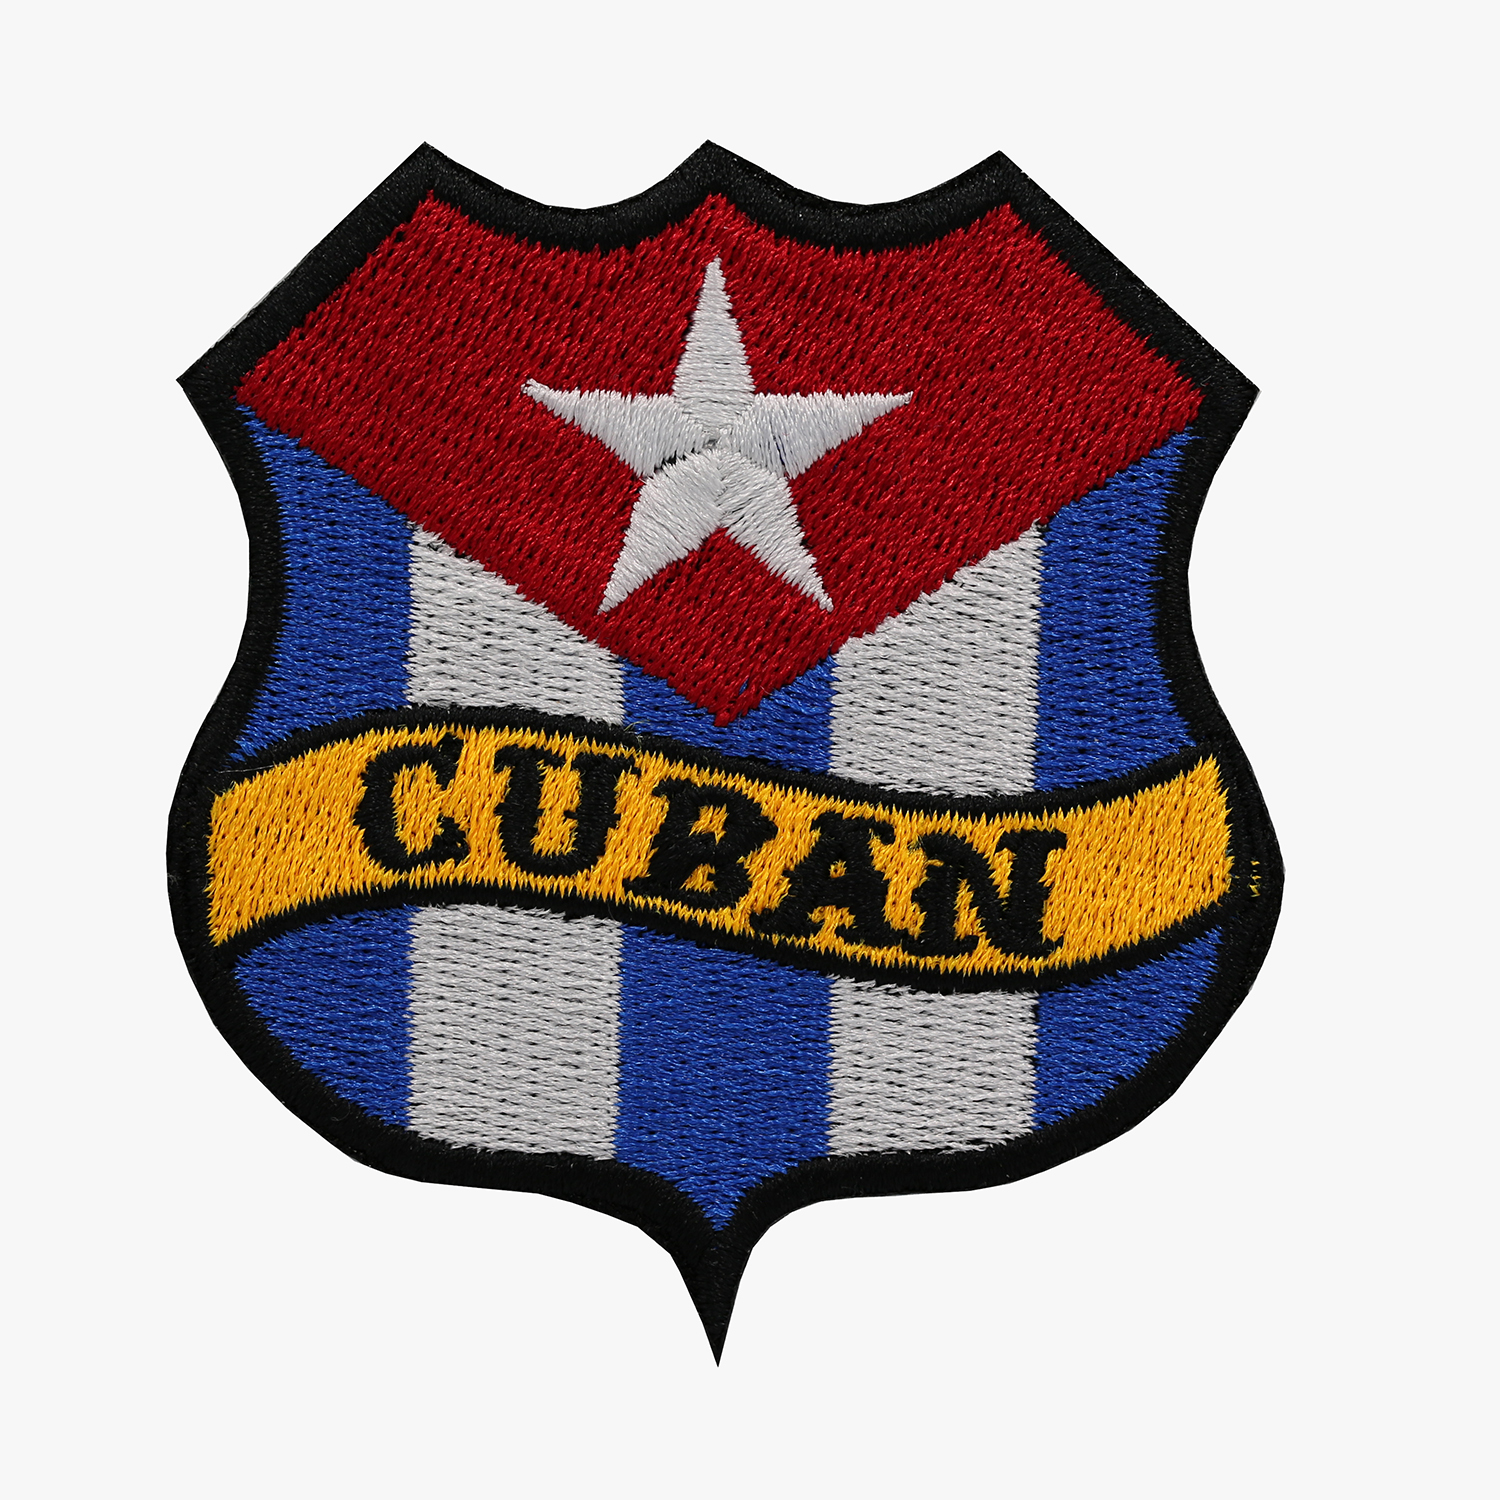 CUBAN FLAG BANNER SHIELD BIKER MC PATCH